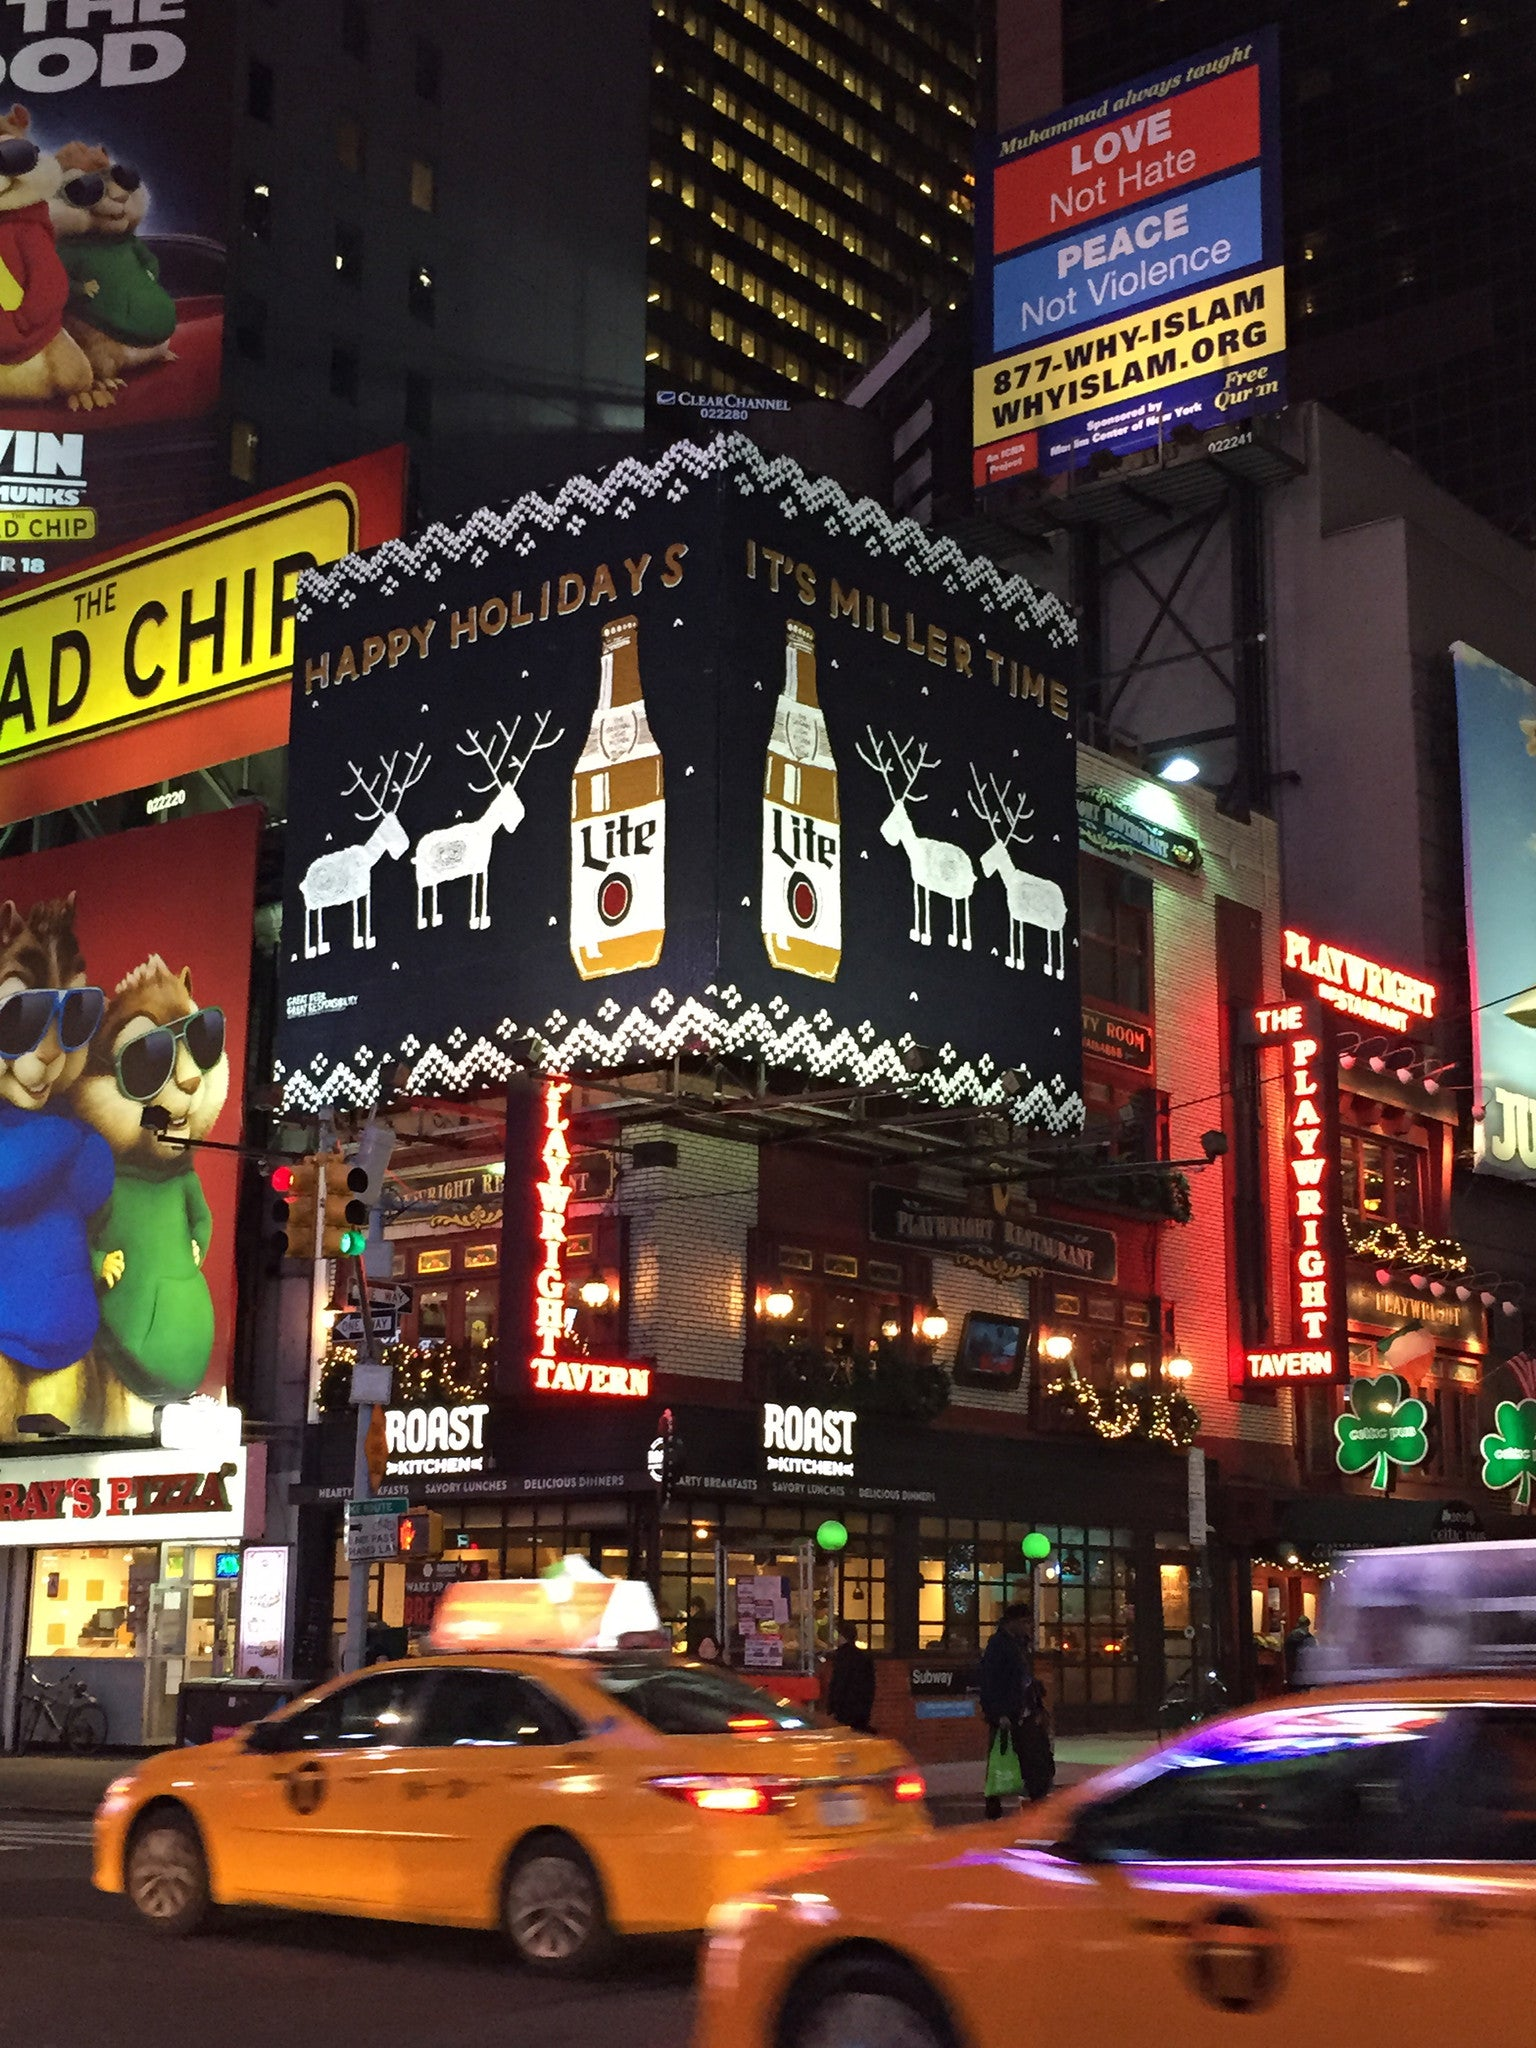 How Miller Lite brought their Holiday Campaign to New York